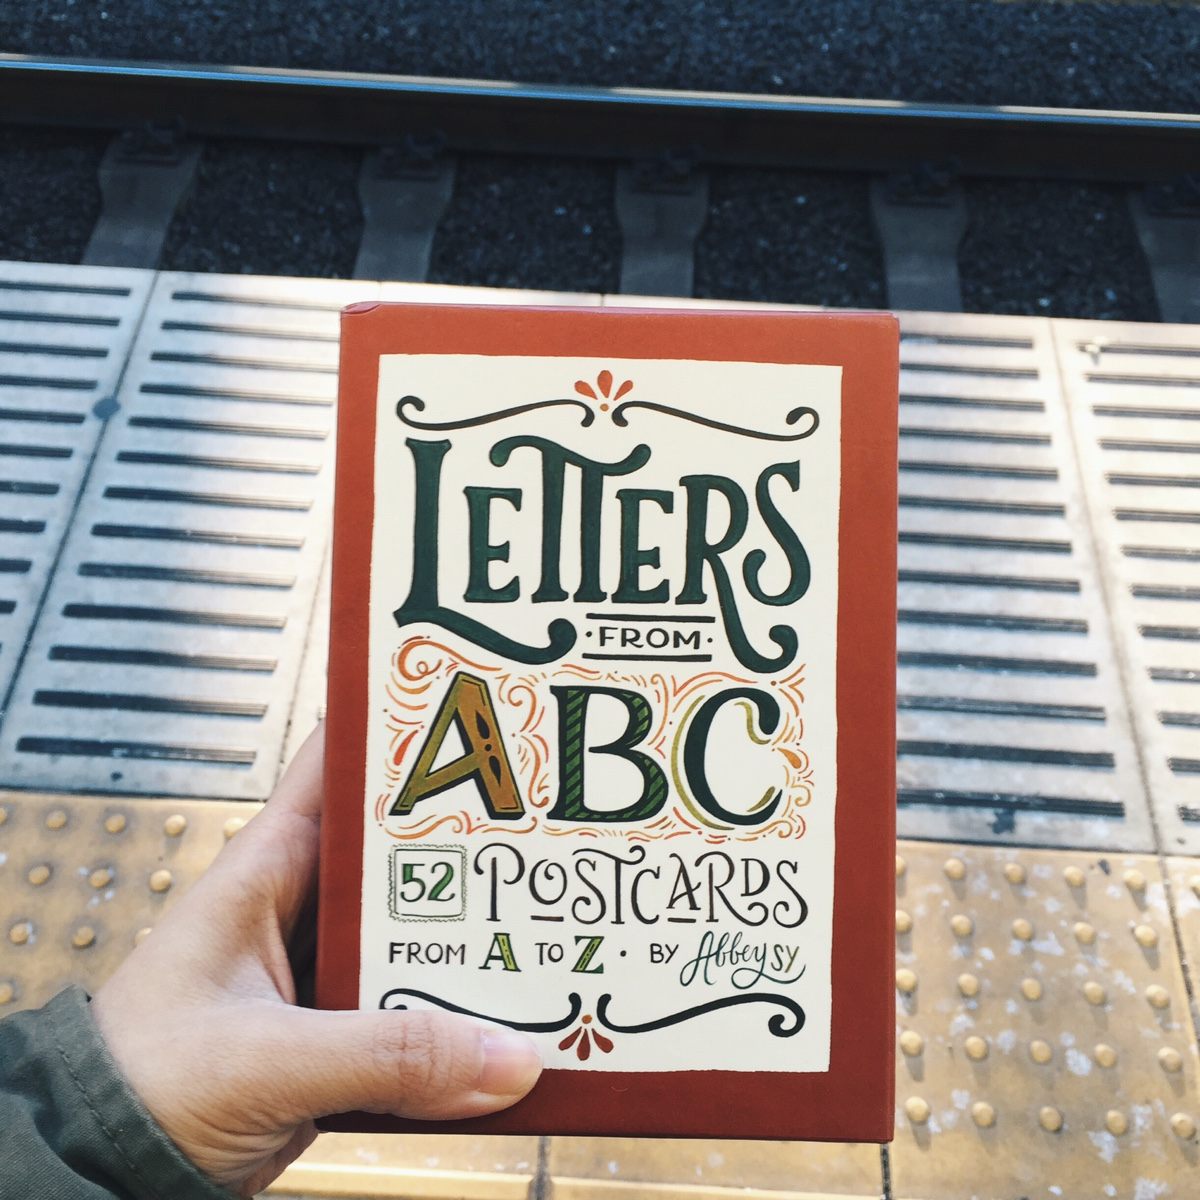 letters-from-abc-postcards.jpg